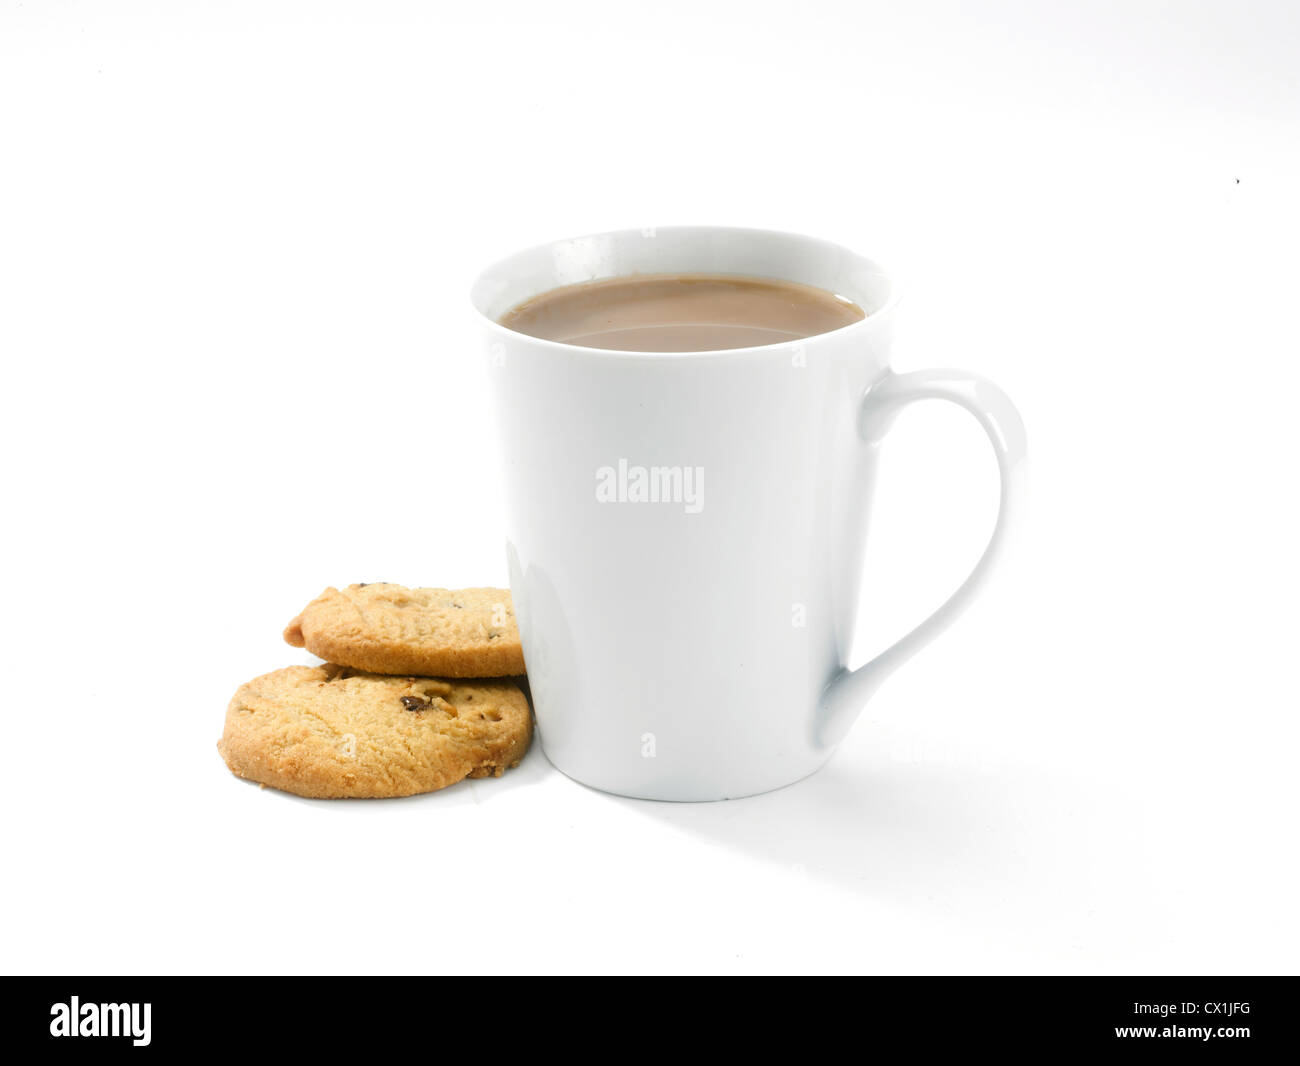 A mug of coffee and two biscuits seen from the side on clean white background - Stock Image